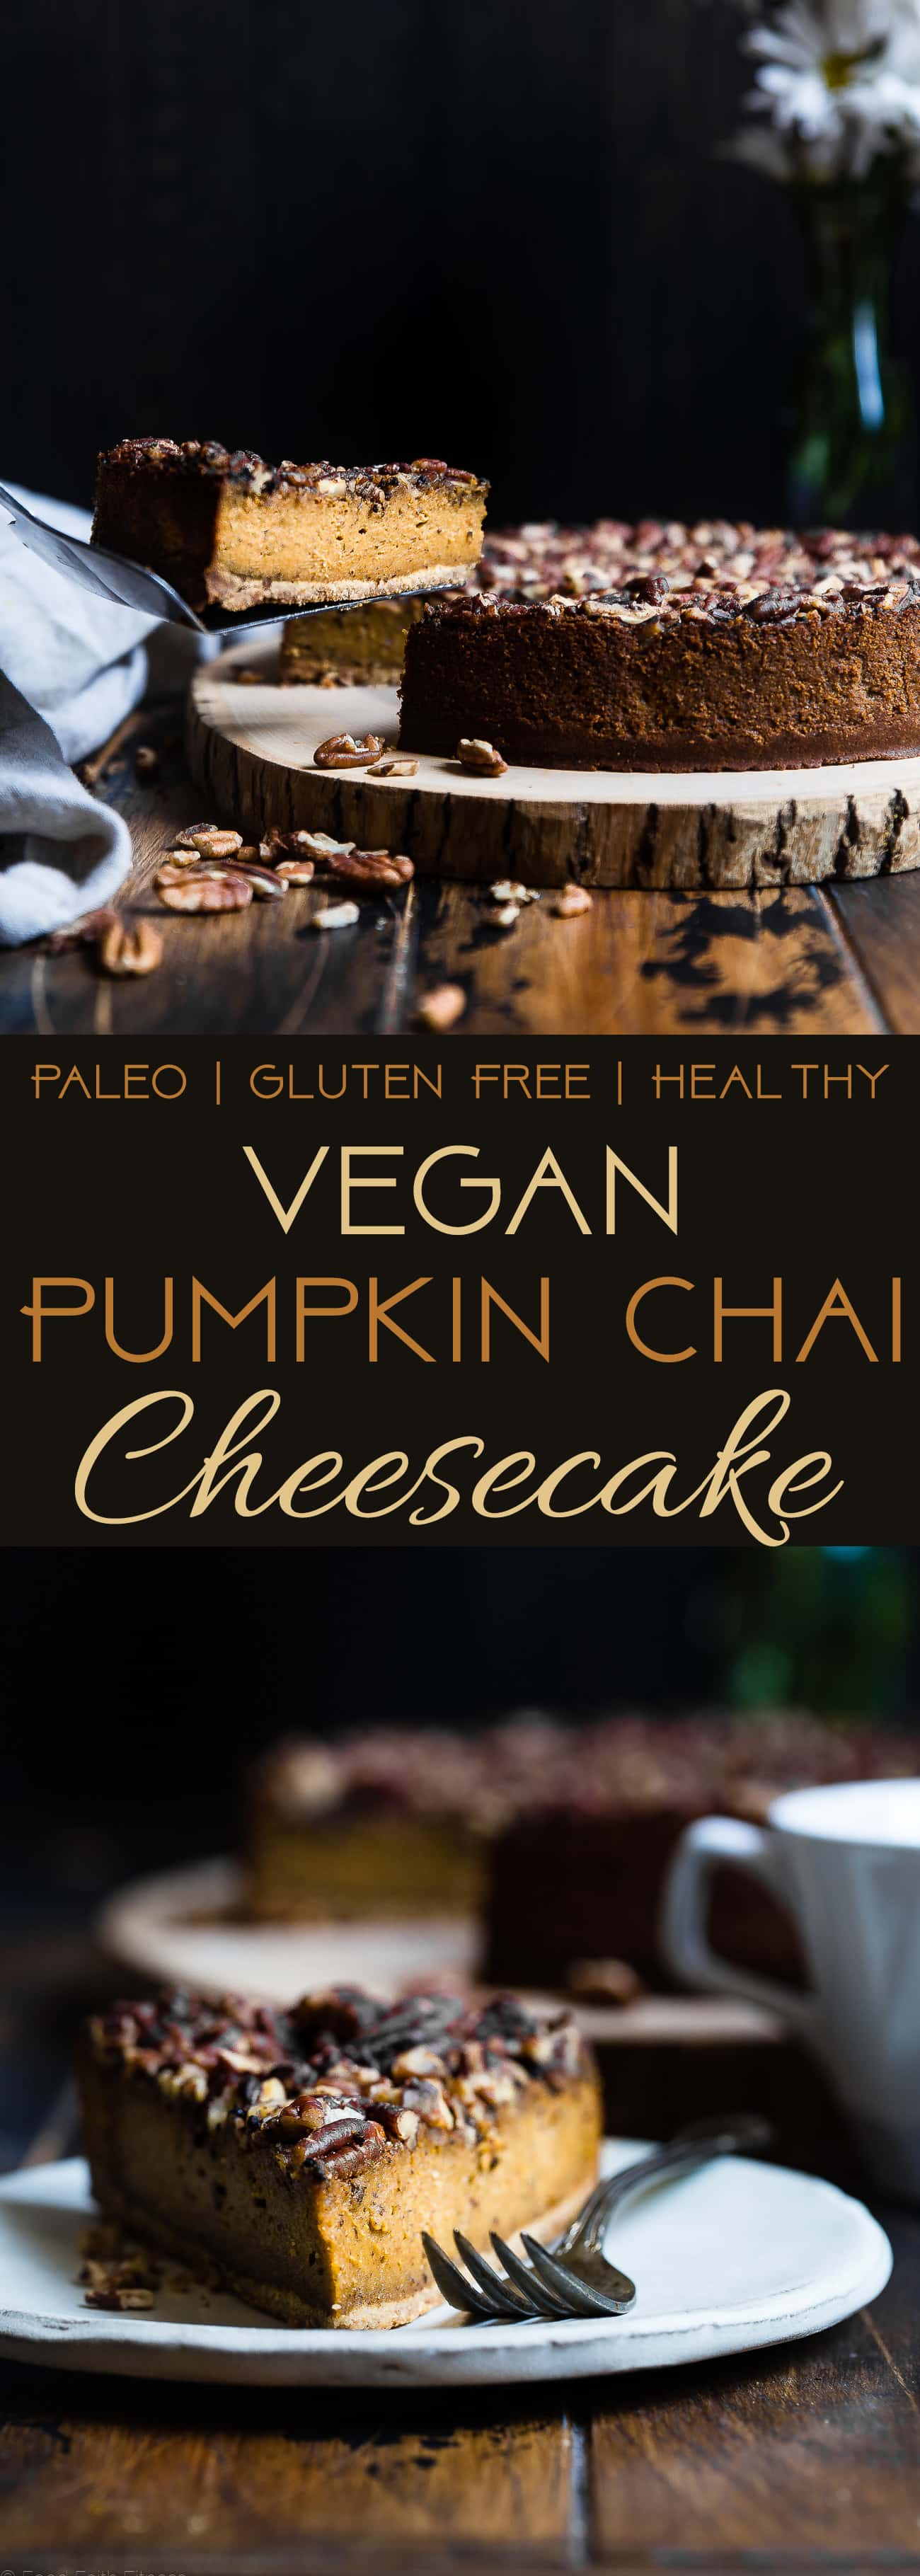 Vegan Pumpkin Chai Cheesecake - This dairy-free, gluten free pumpkin cheesecake is infused with spicy chai tea! It's an easy, healthy and paleo friendly show-stopping fall dessert! | Foodfaithfitness.com | @FoodFaithFit